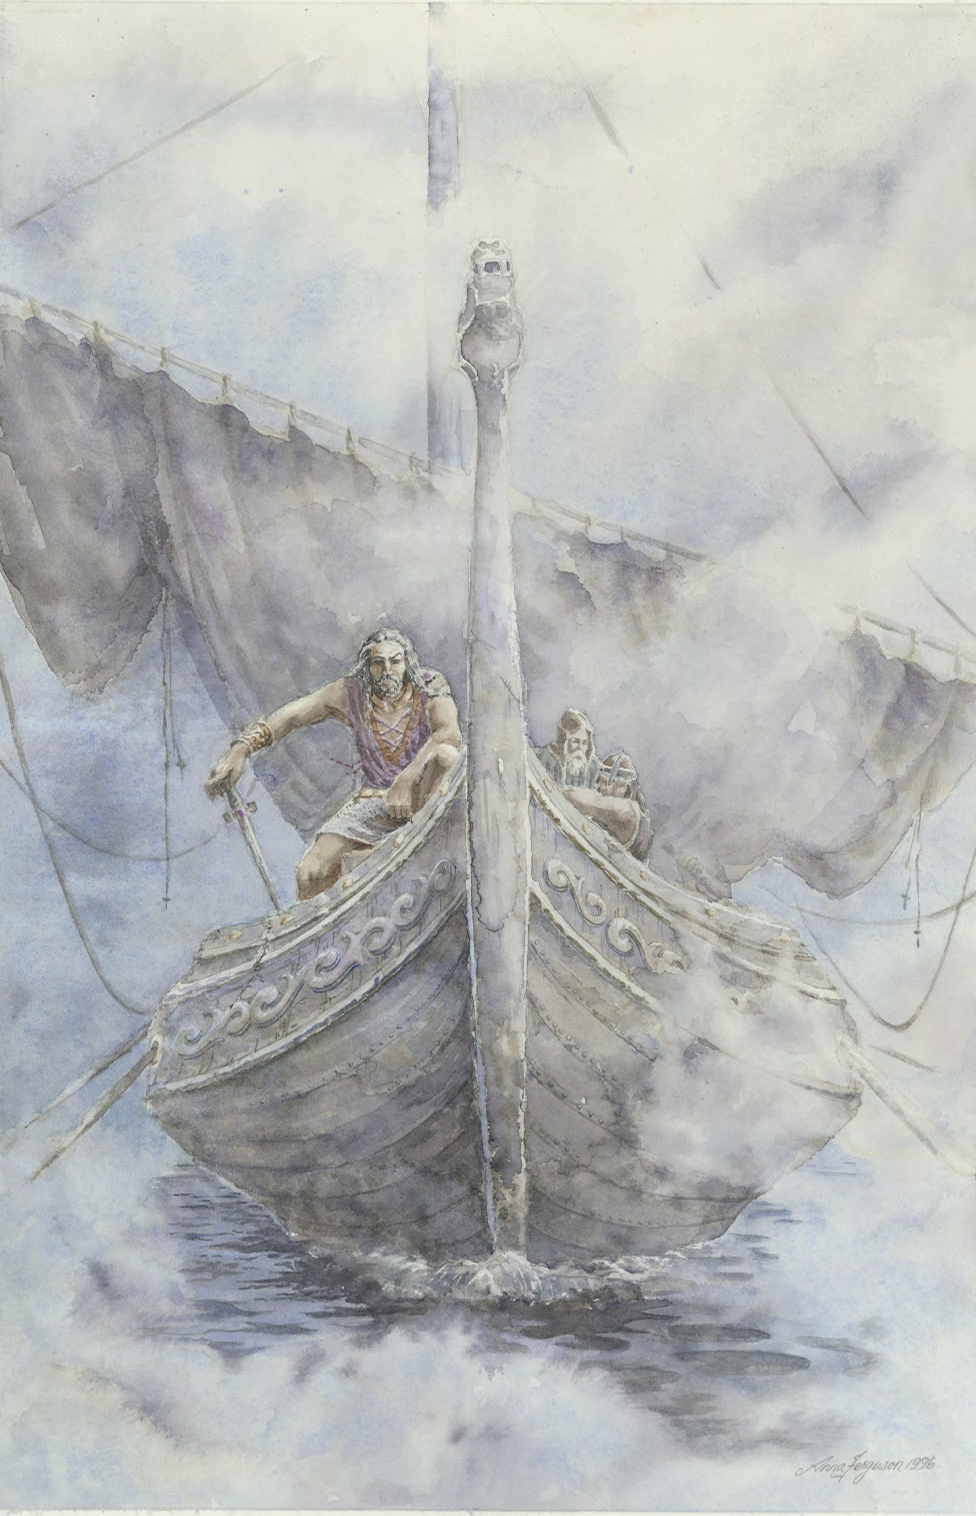 Thorfinn - Viking river raid - Macbeth